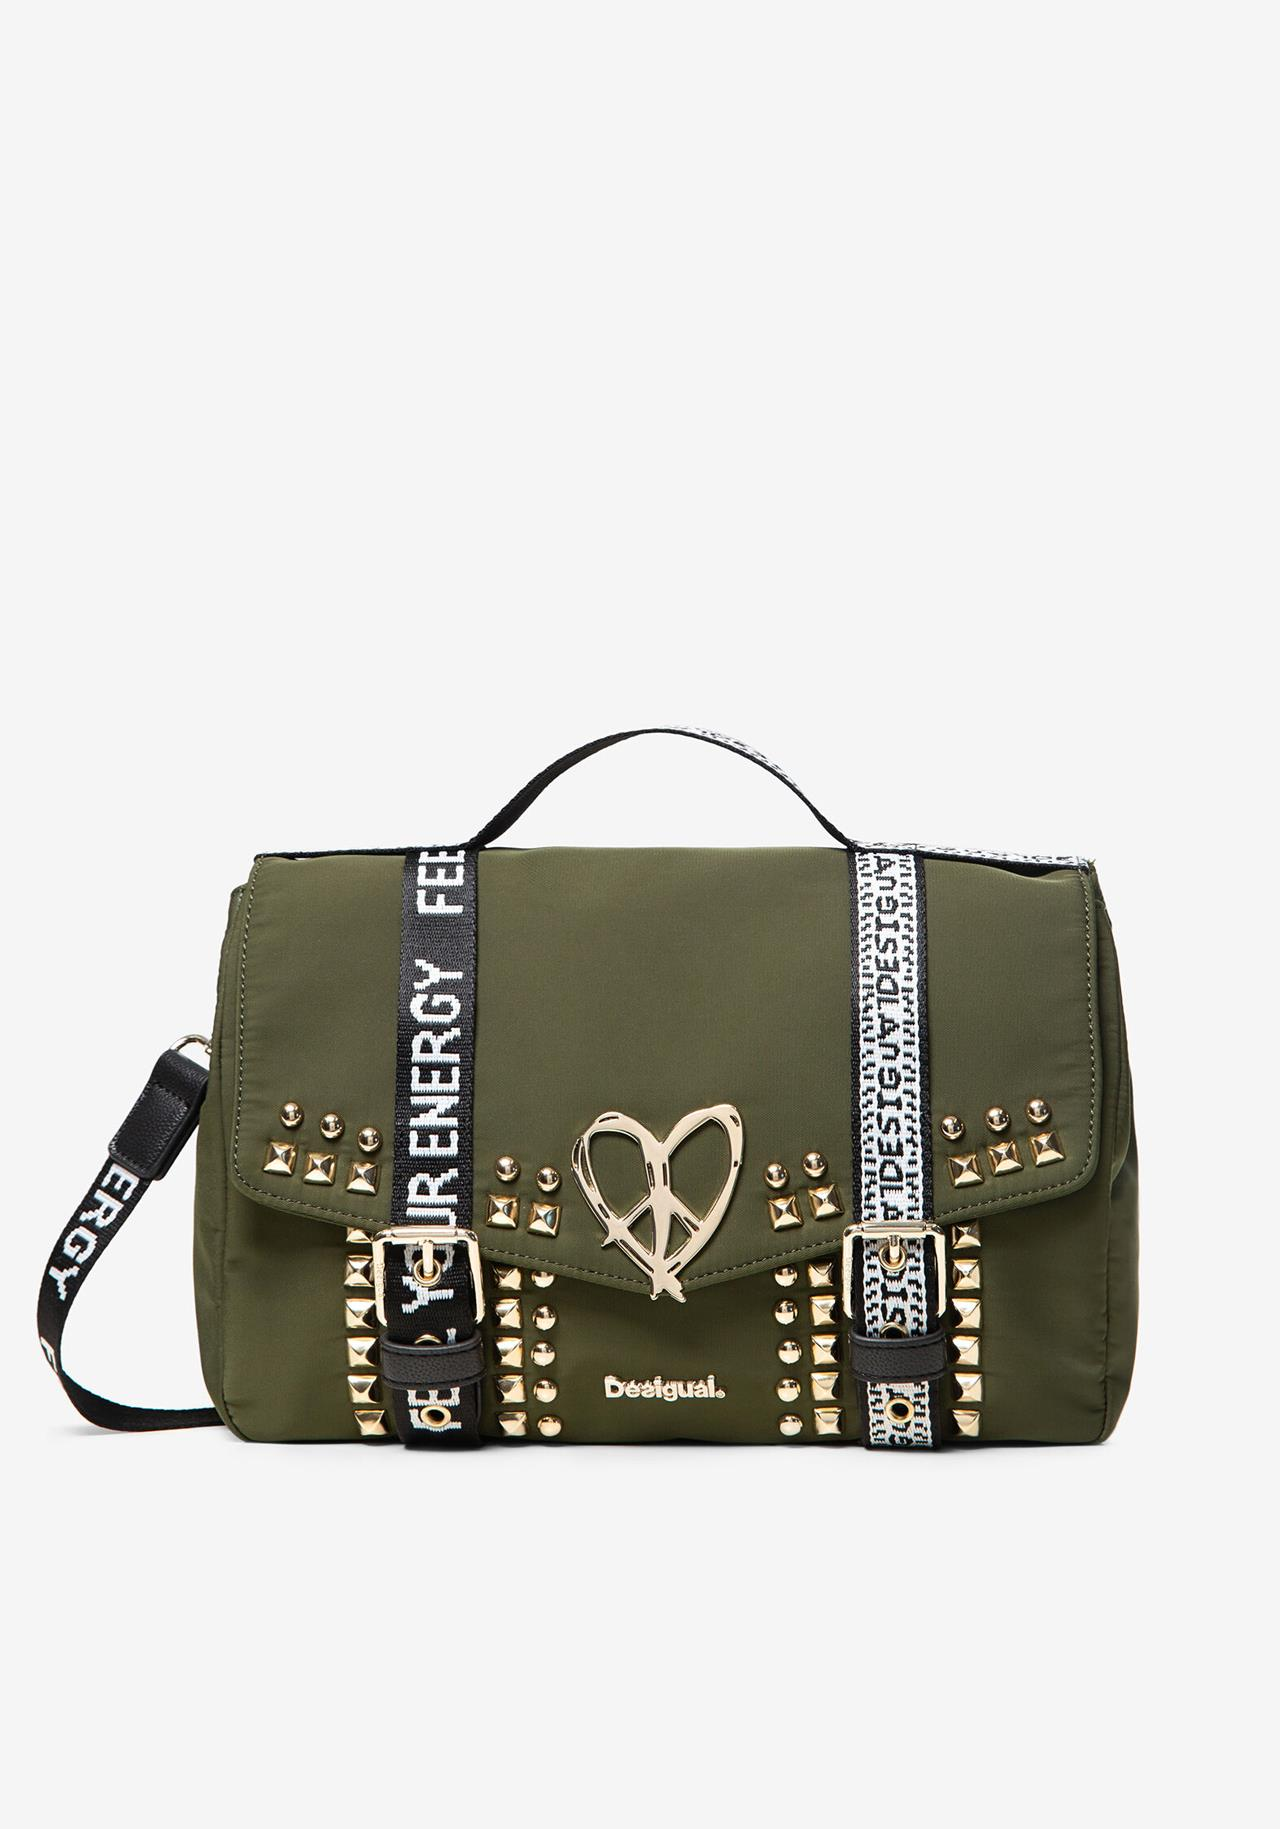 DESIGUAL BOLSO CAQUI BLACK FRIDAY